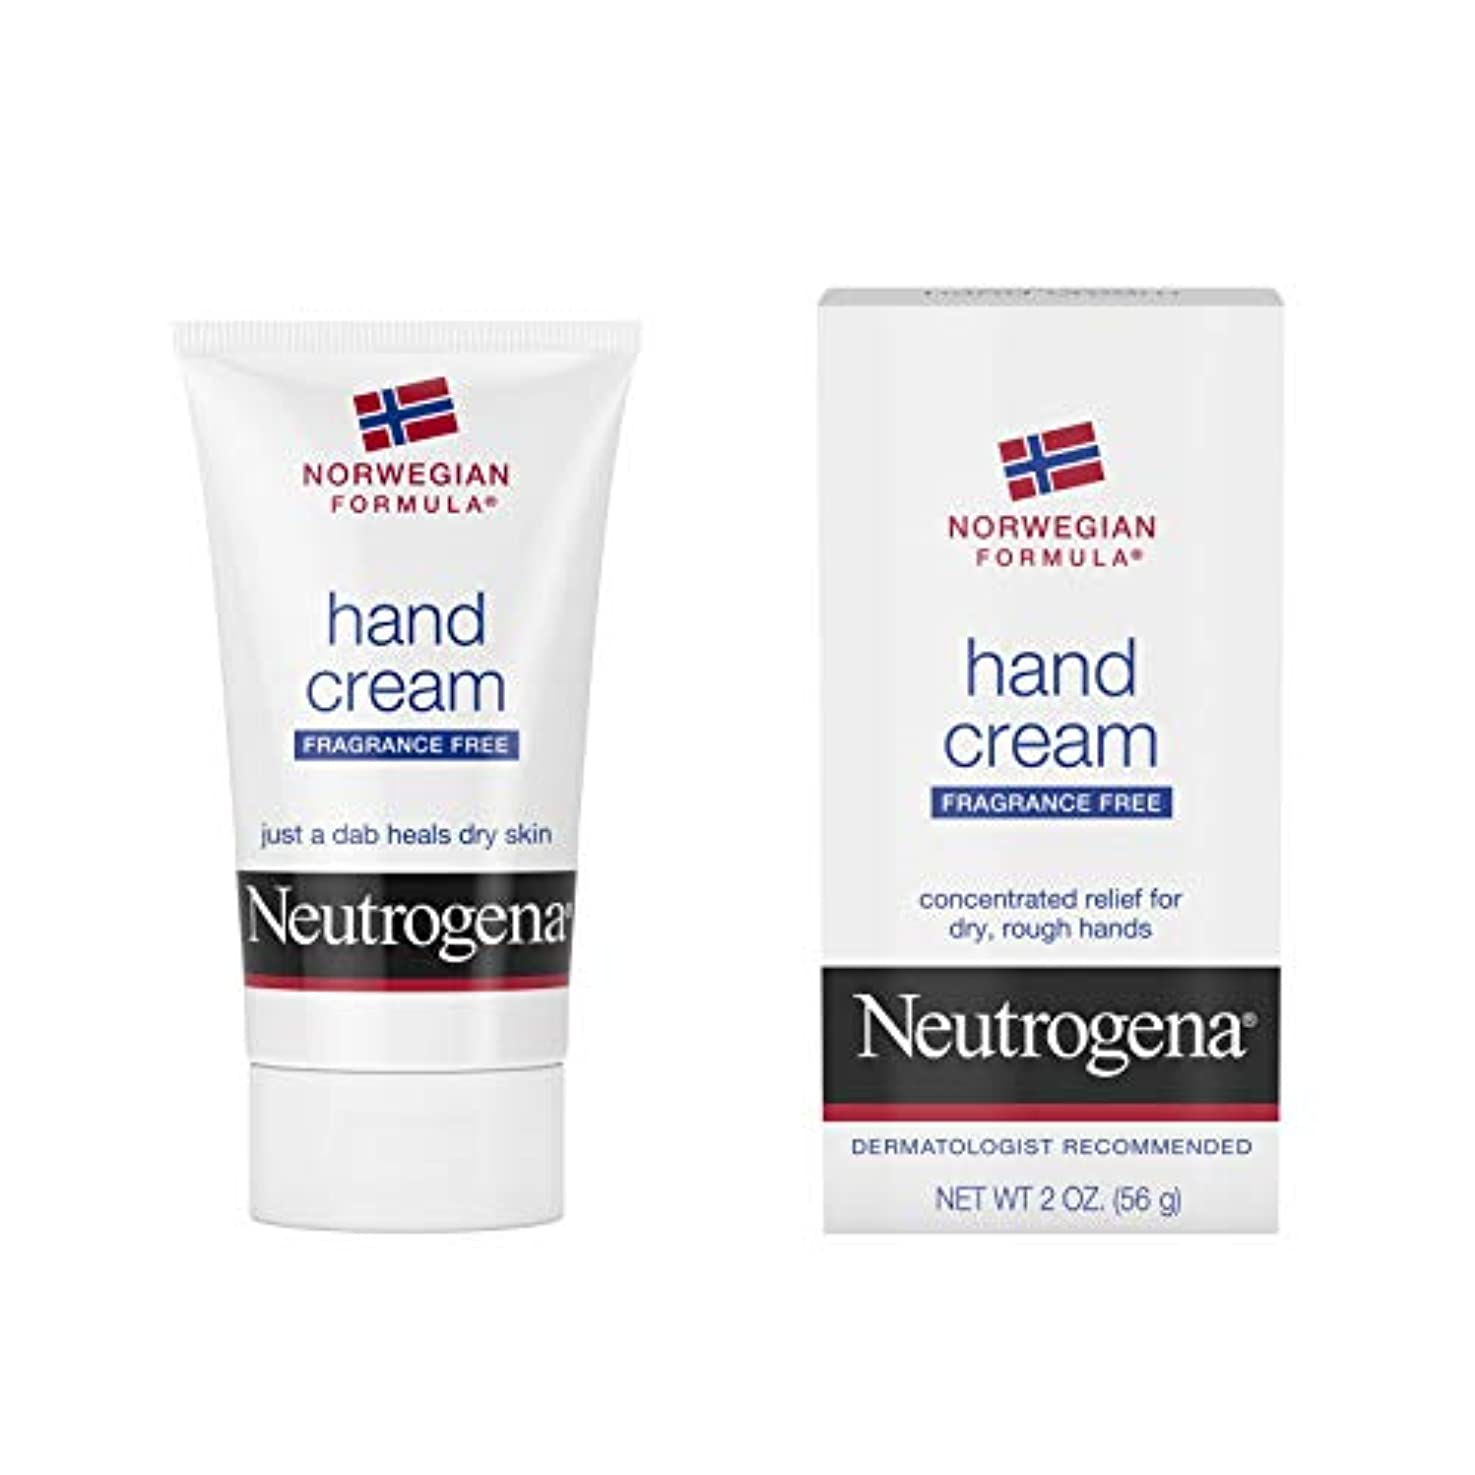 フェデレーション椅子マイルNeutrogena Norwegian Formula Hand Cream Fragrance-Free 60 ml (並行輸入品)